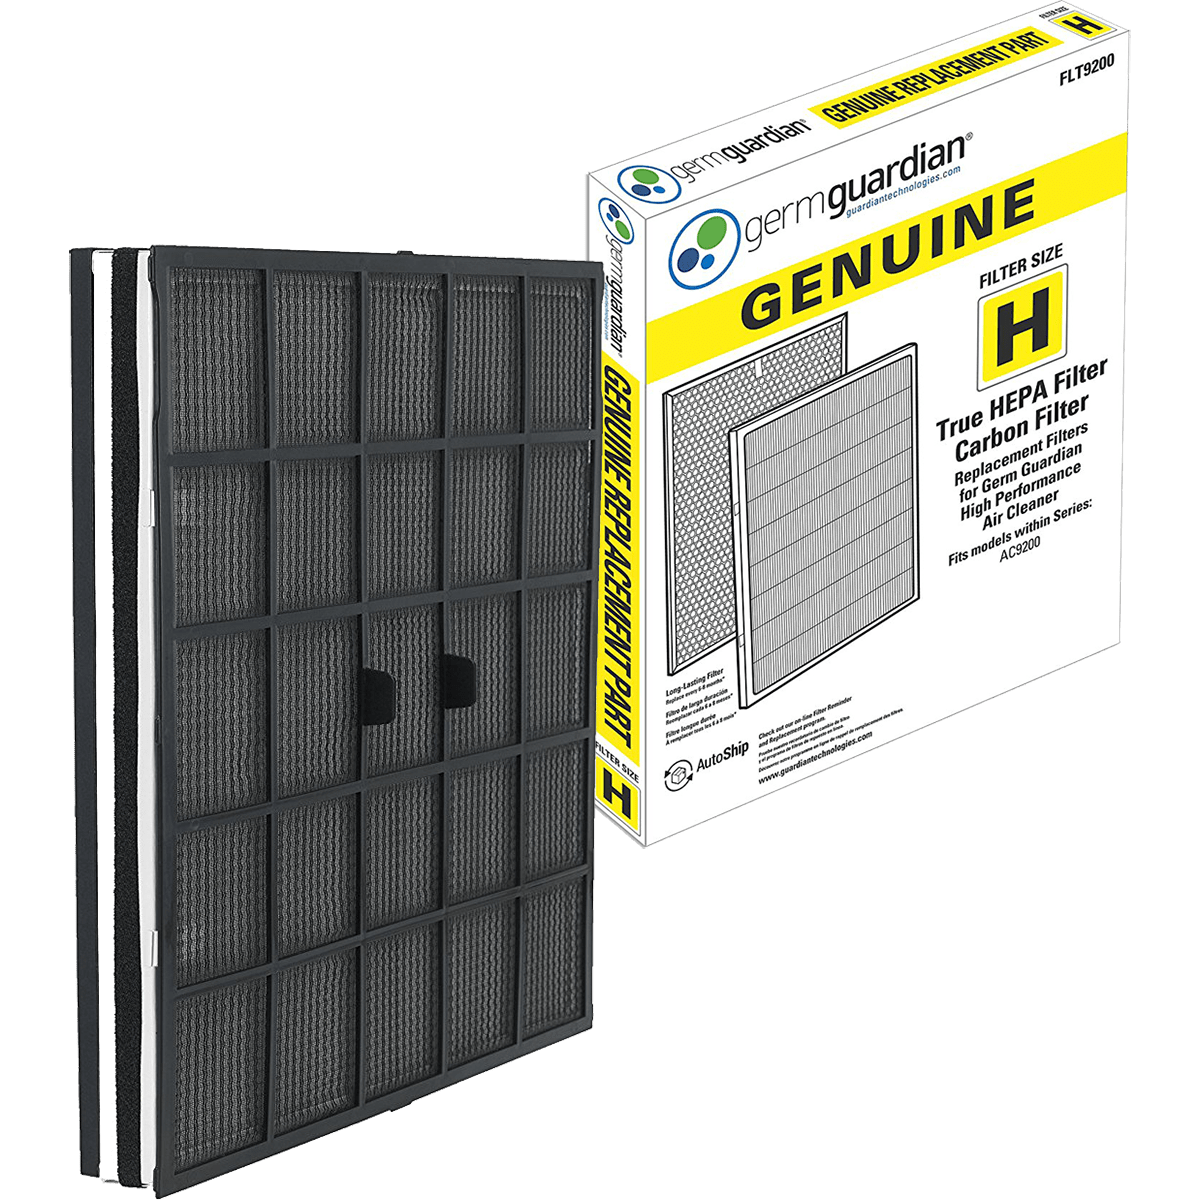 Germ Guardian FLT9200 Air Purifier Filter ge5162